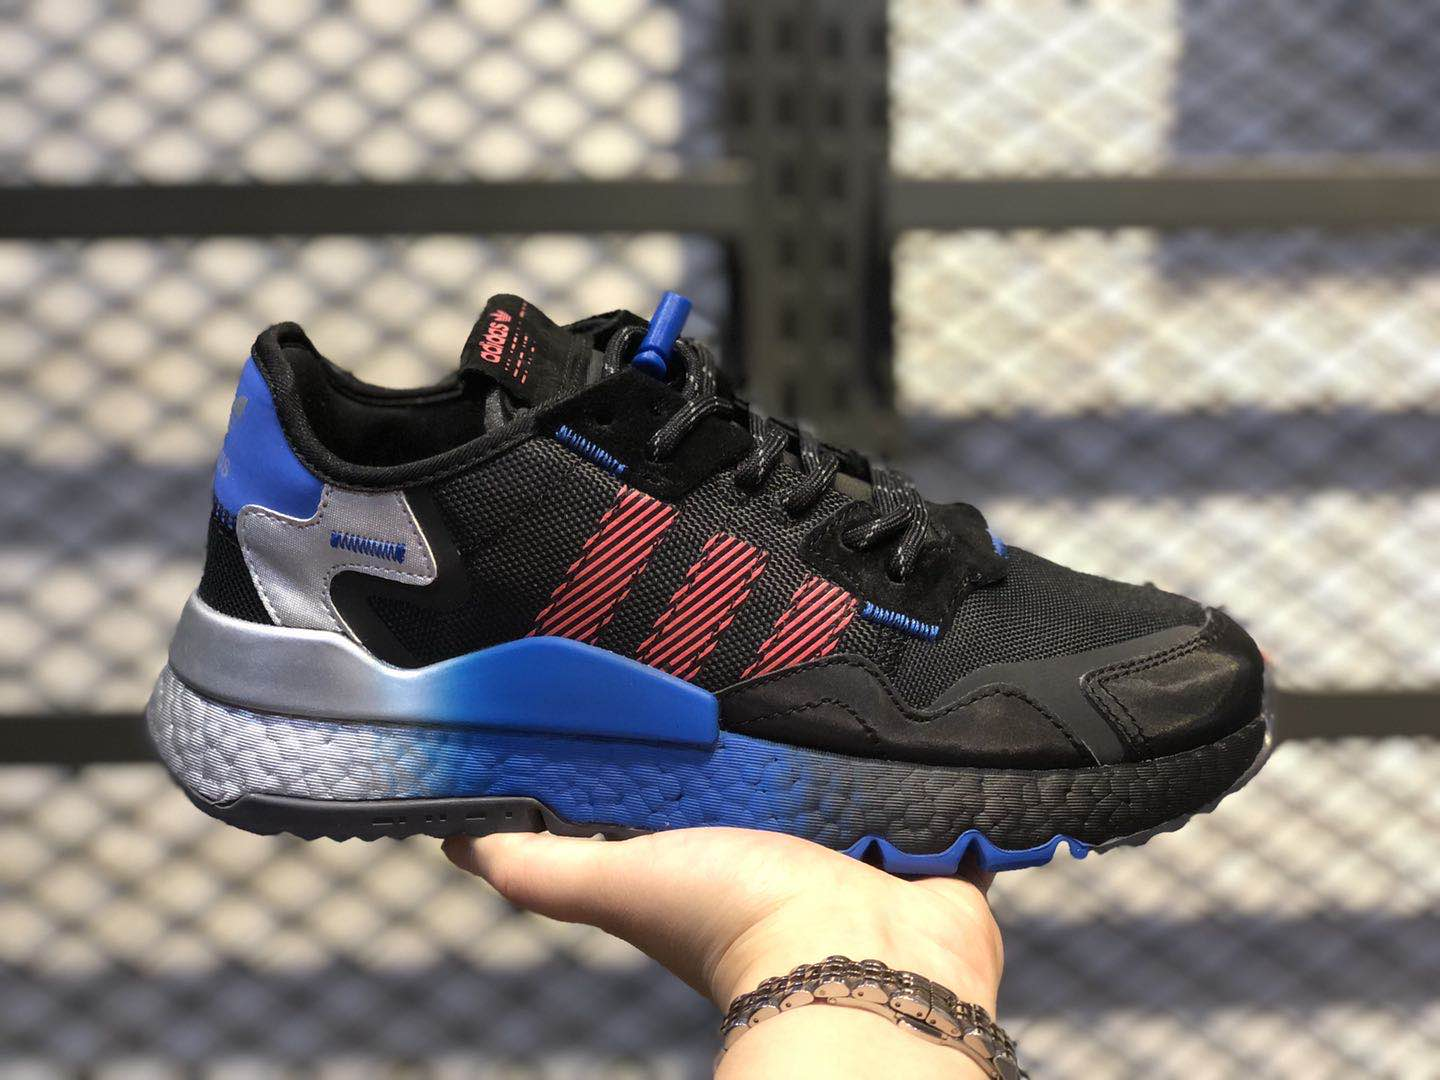 Adidas Nite Jogger Shoes Black/Trgrme-Flared Hot Selling FW4275